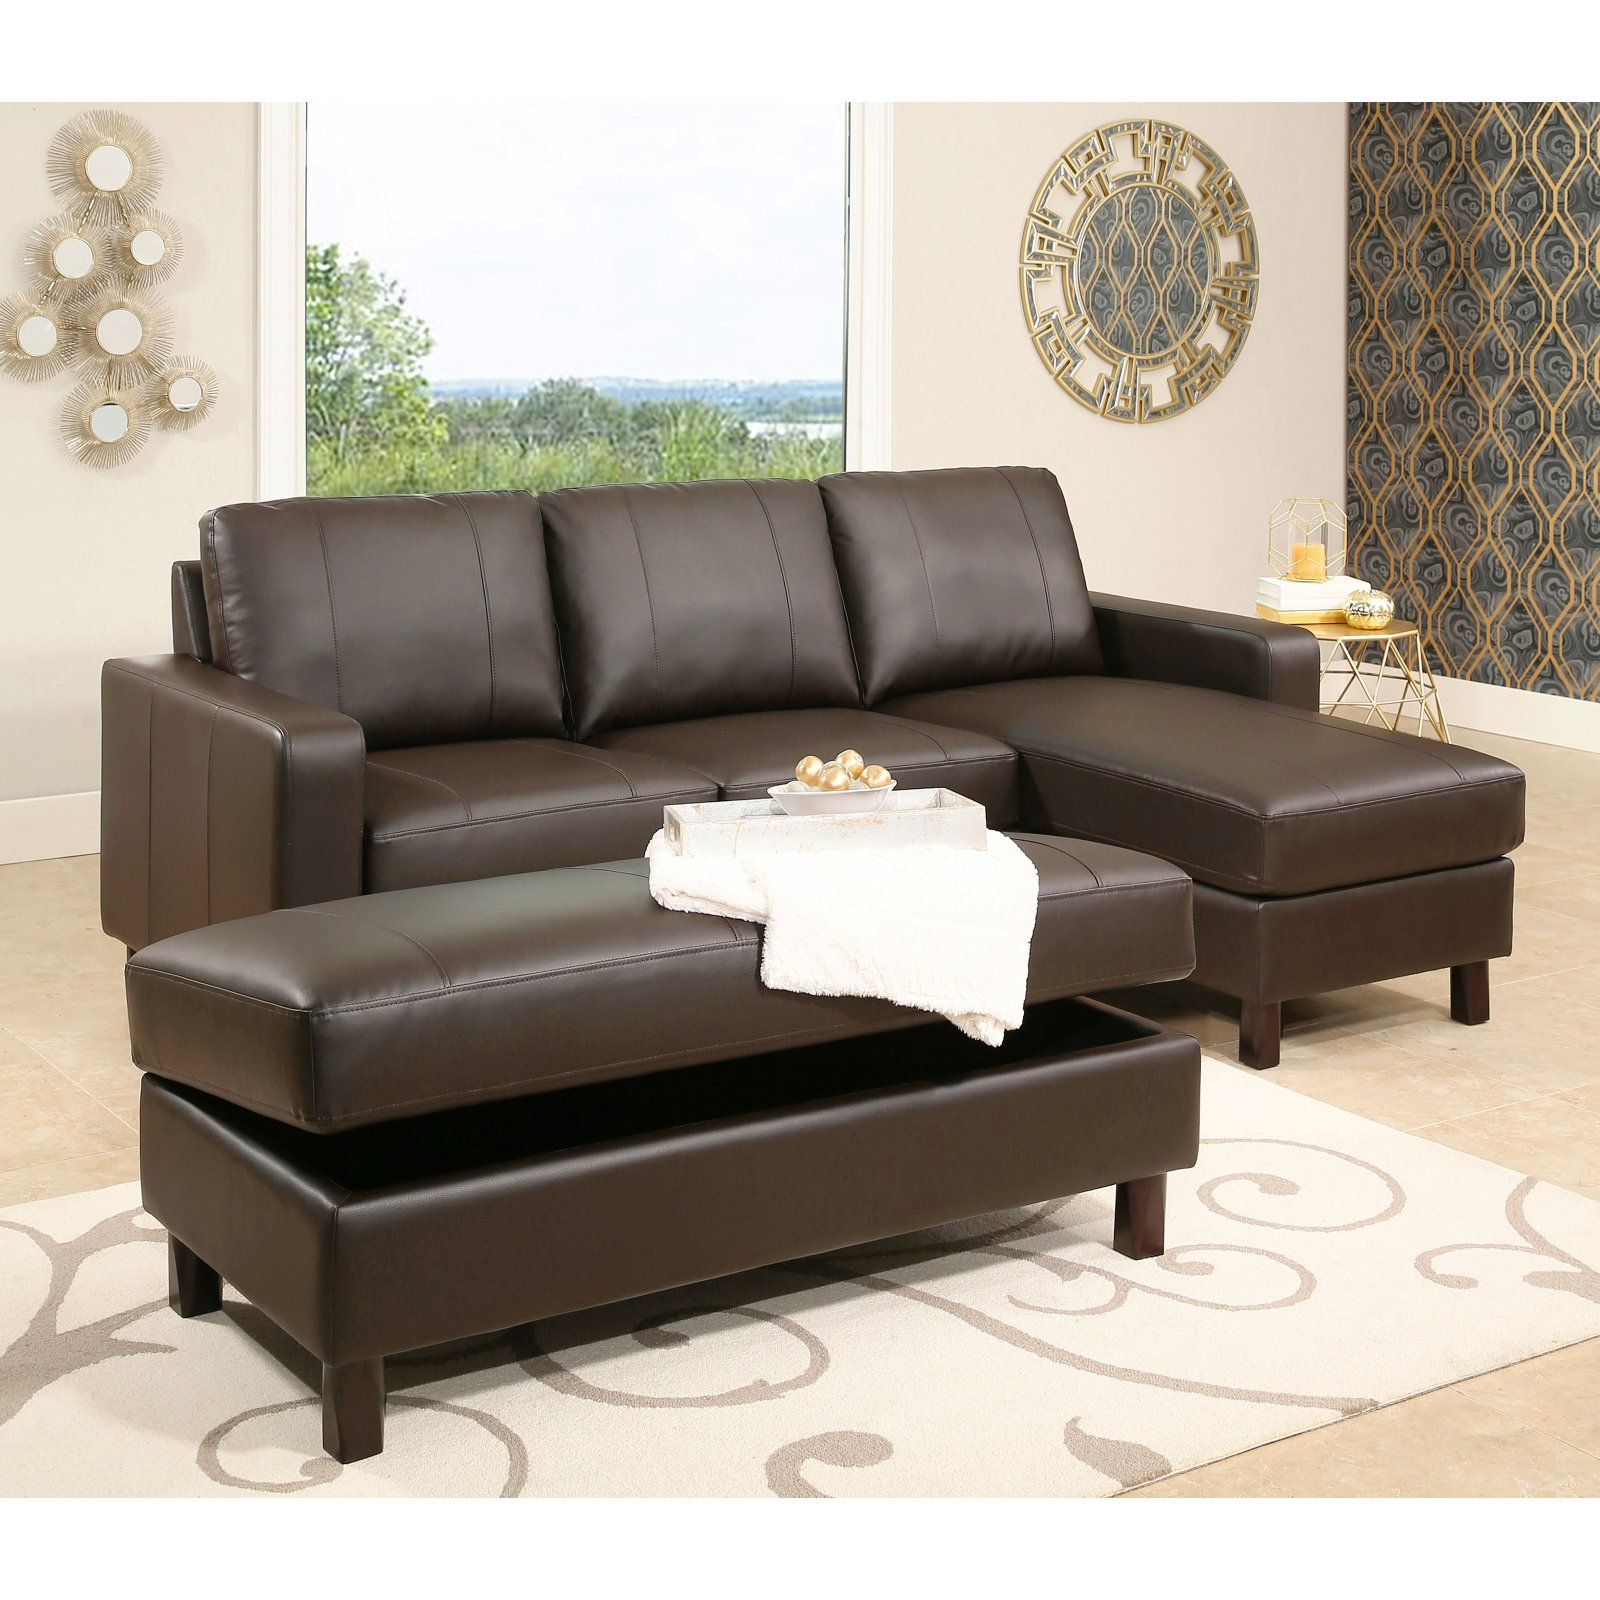 Abbyson Cedar Leather Reversible Sectional Sofa With Intended For 2017 Copenhagen Reversible Small Space Sectional Sofas With Storage (View 17 of 25)